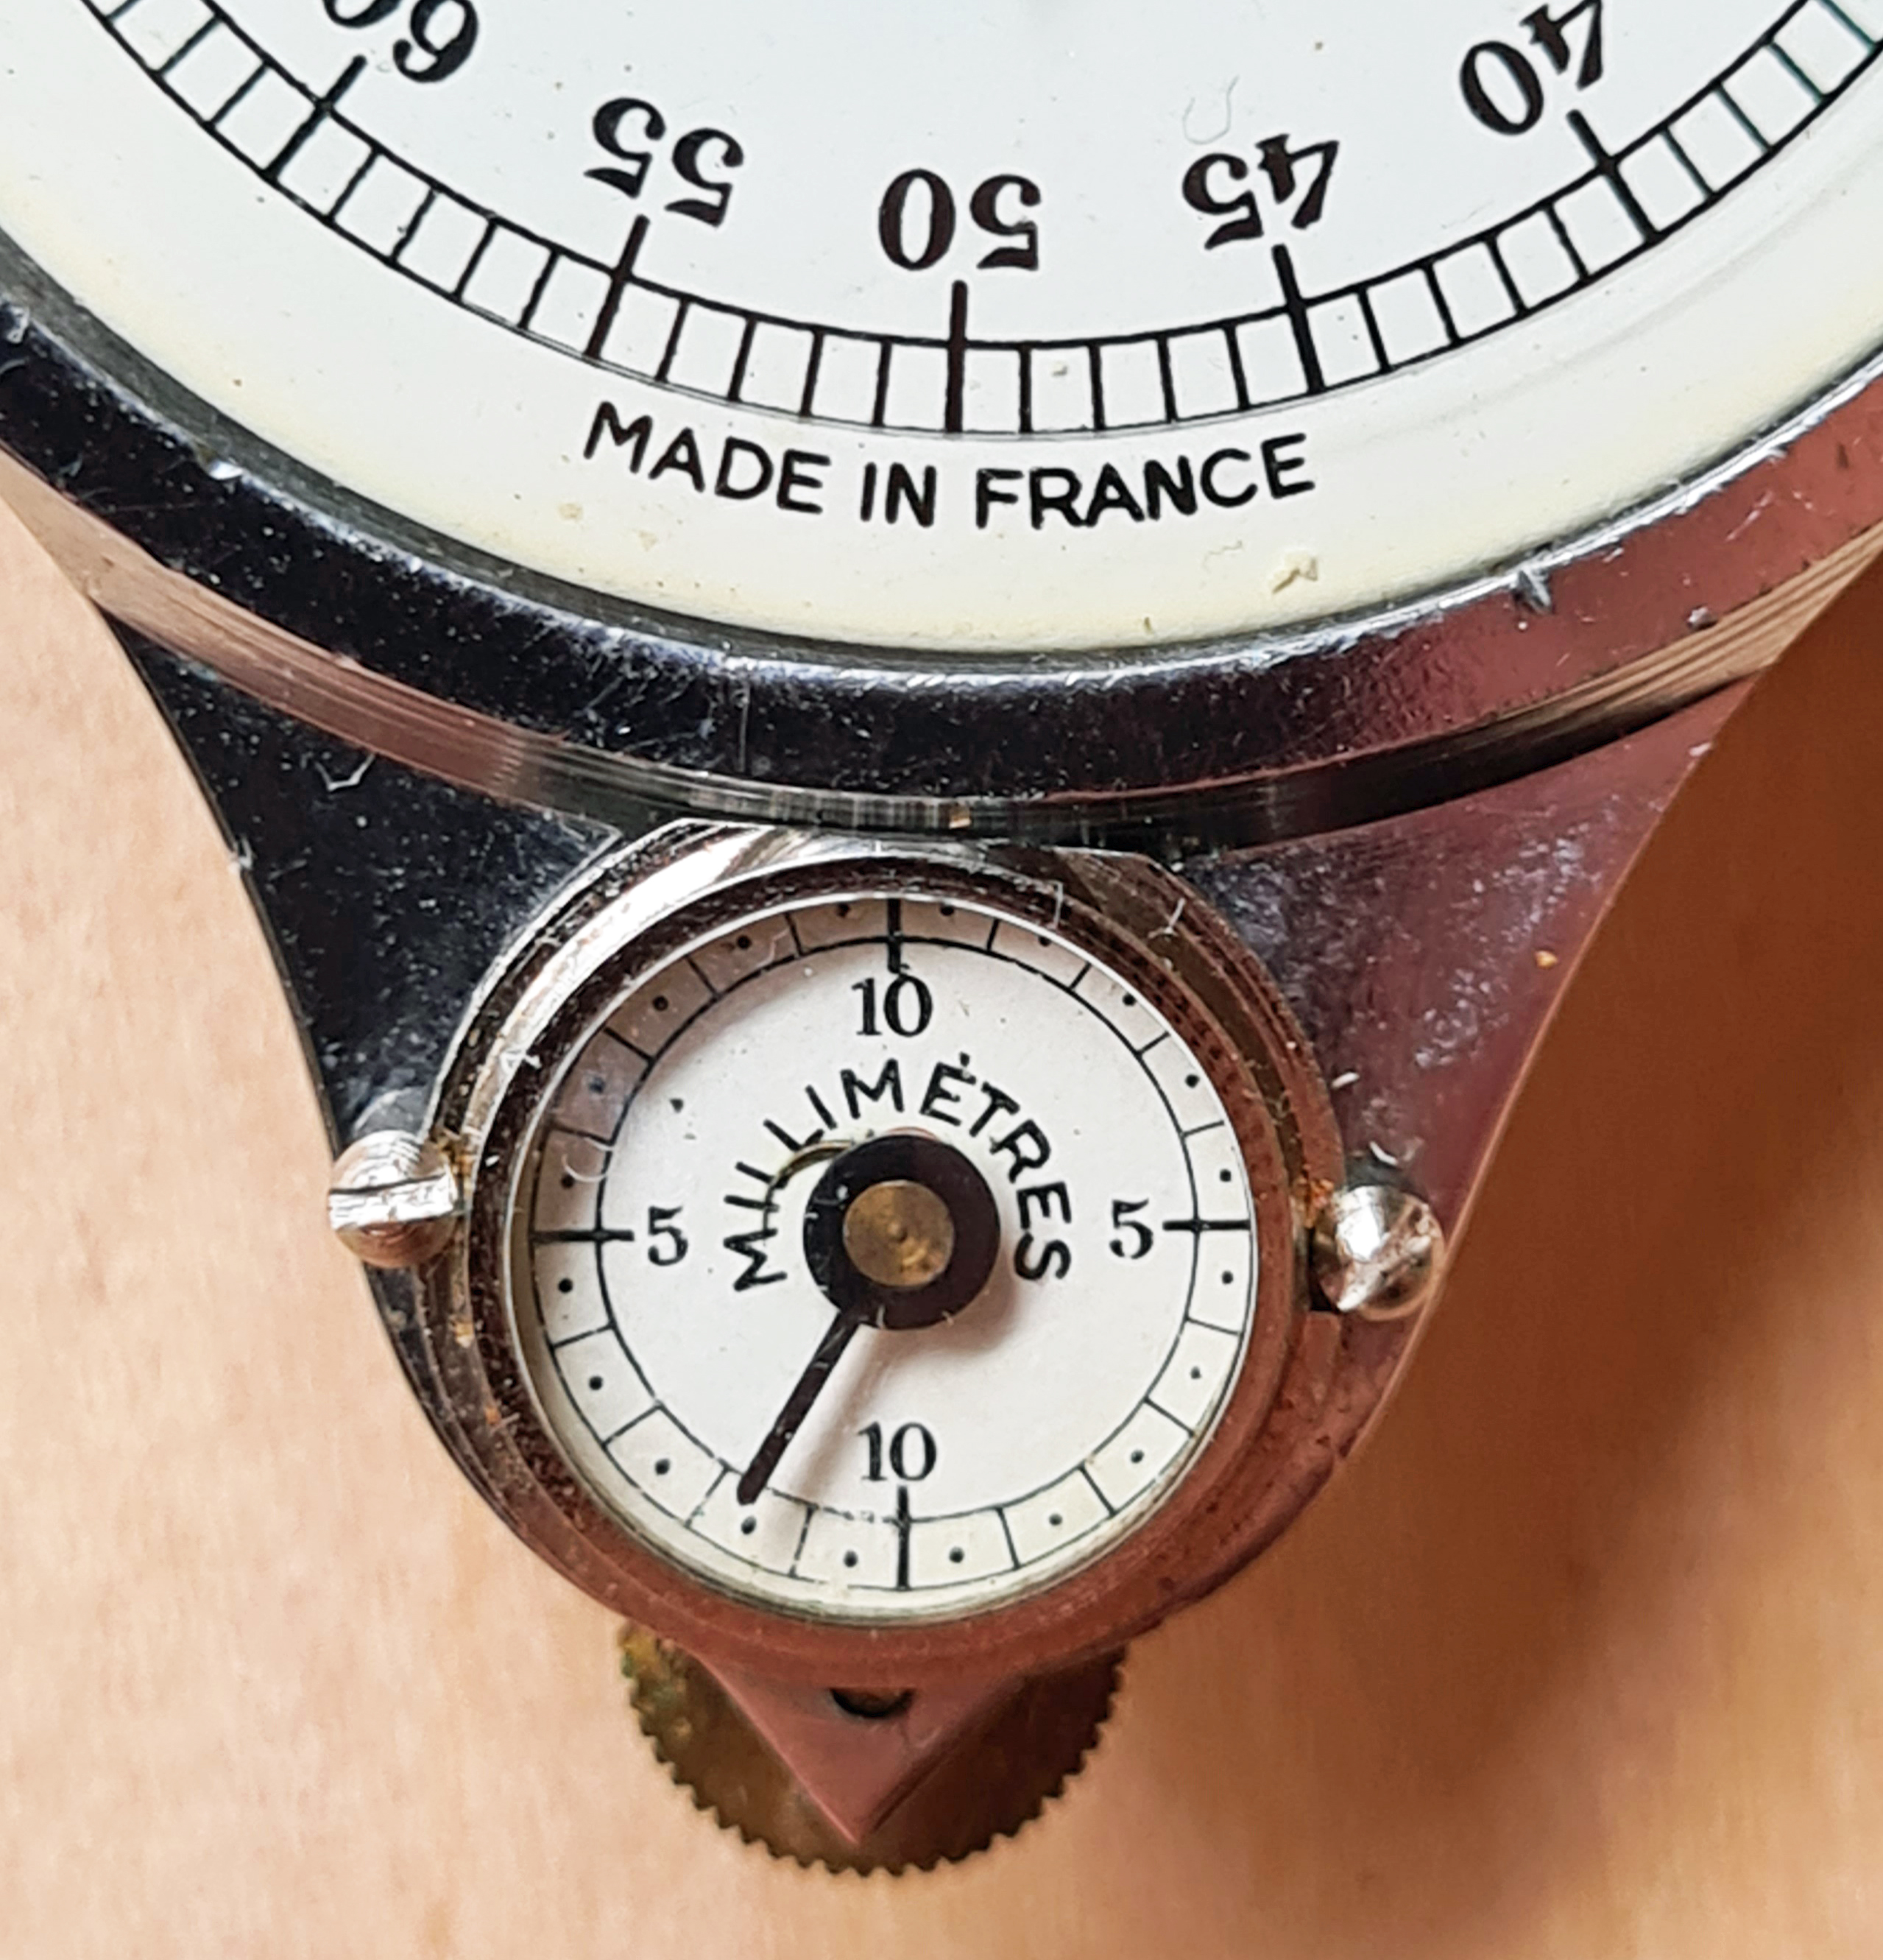 Small dial on model 54M